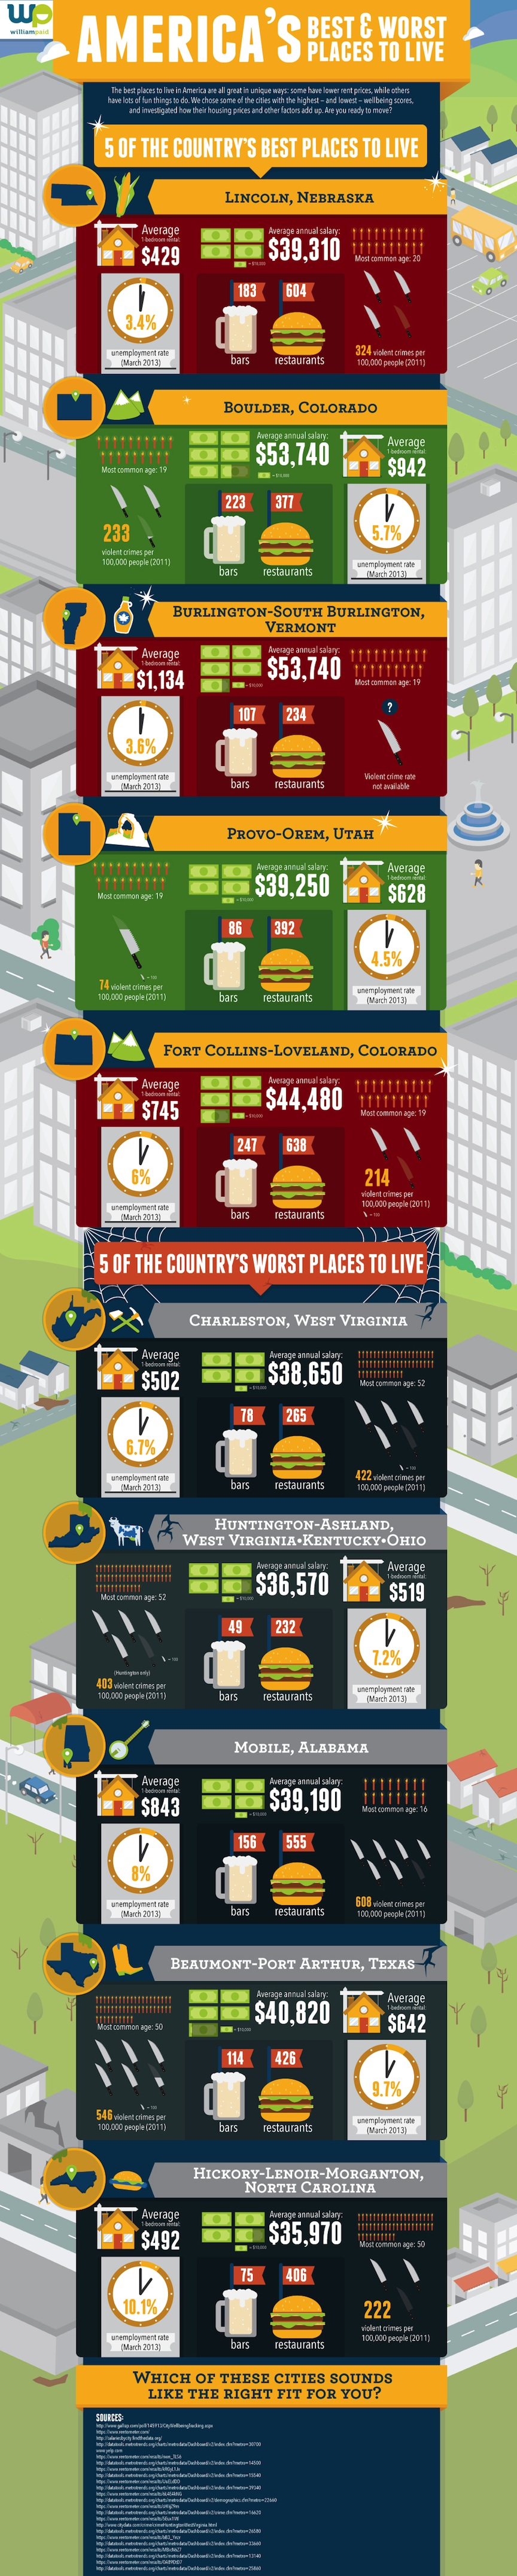 America's Best & Worst Place To Live